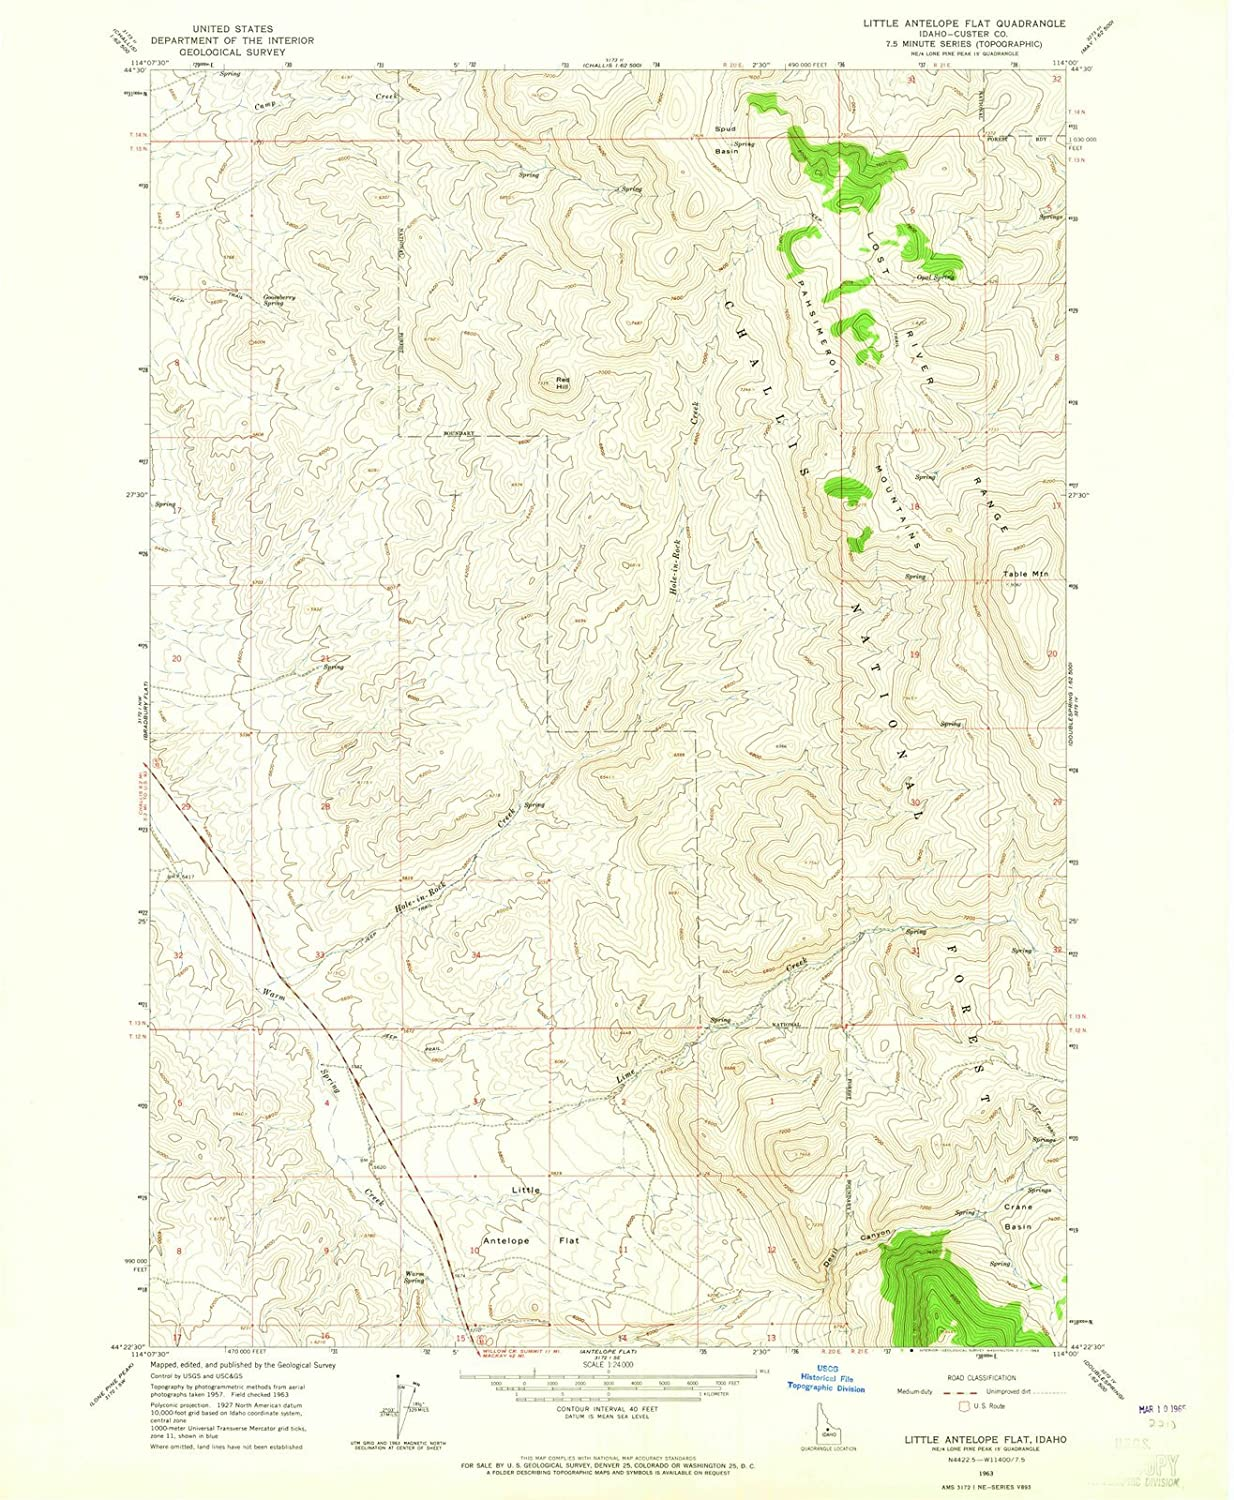 Amazon.com: Historic Map | Little Antelope Flat, Idaho (ID ... on flat map of united states, printable flat map, flat map pennsylvania, world map, sua flat map, america flat map, chantry flats map, flat globe, flat map of countries, flat map of asia, future of the united states map, usa map, a flat map, flat global map, 48 united states map, red state blue state map, flat europe map, empty states map, flat continent map, globe flattened to map,